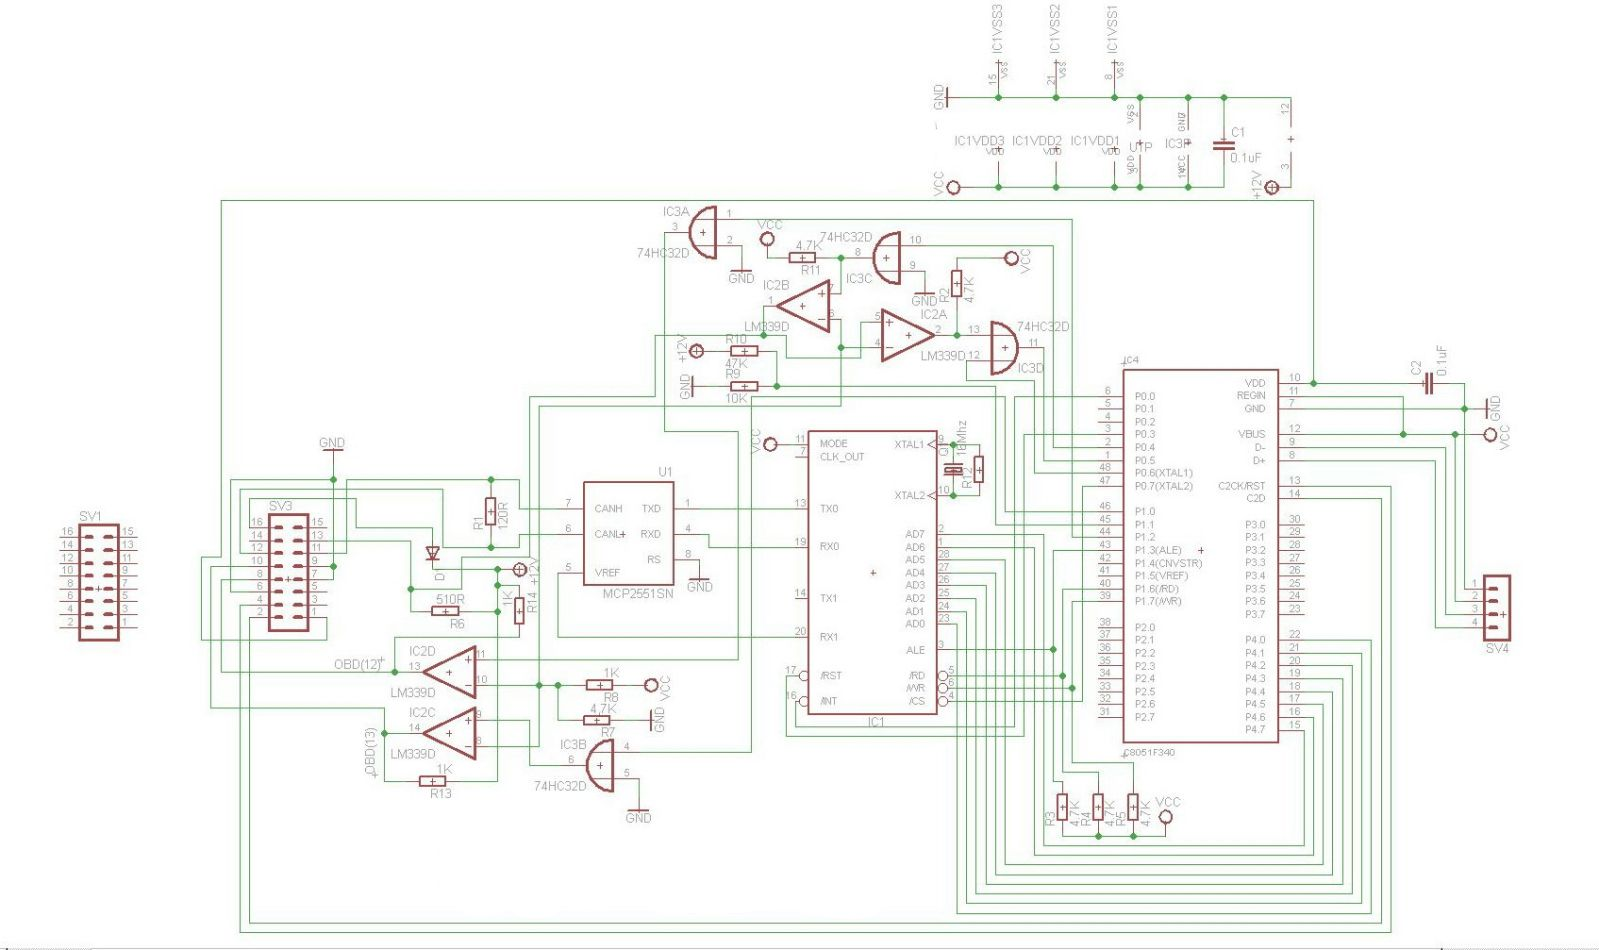 Bosch Edc16 Wiring Diagram : 26 Wiring Diagram Images